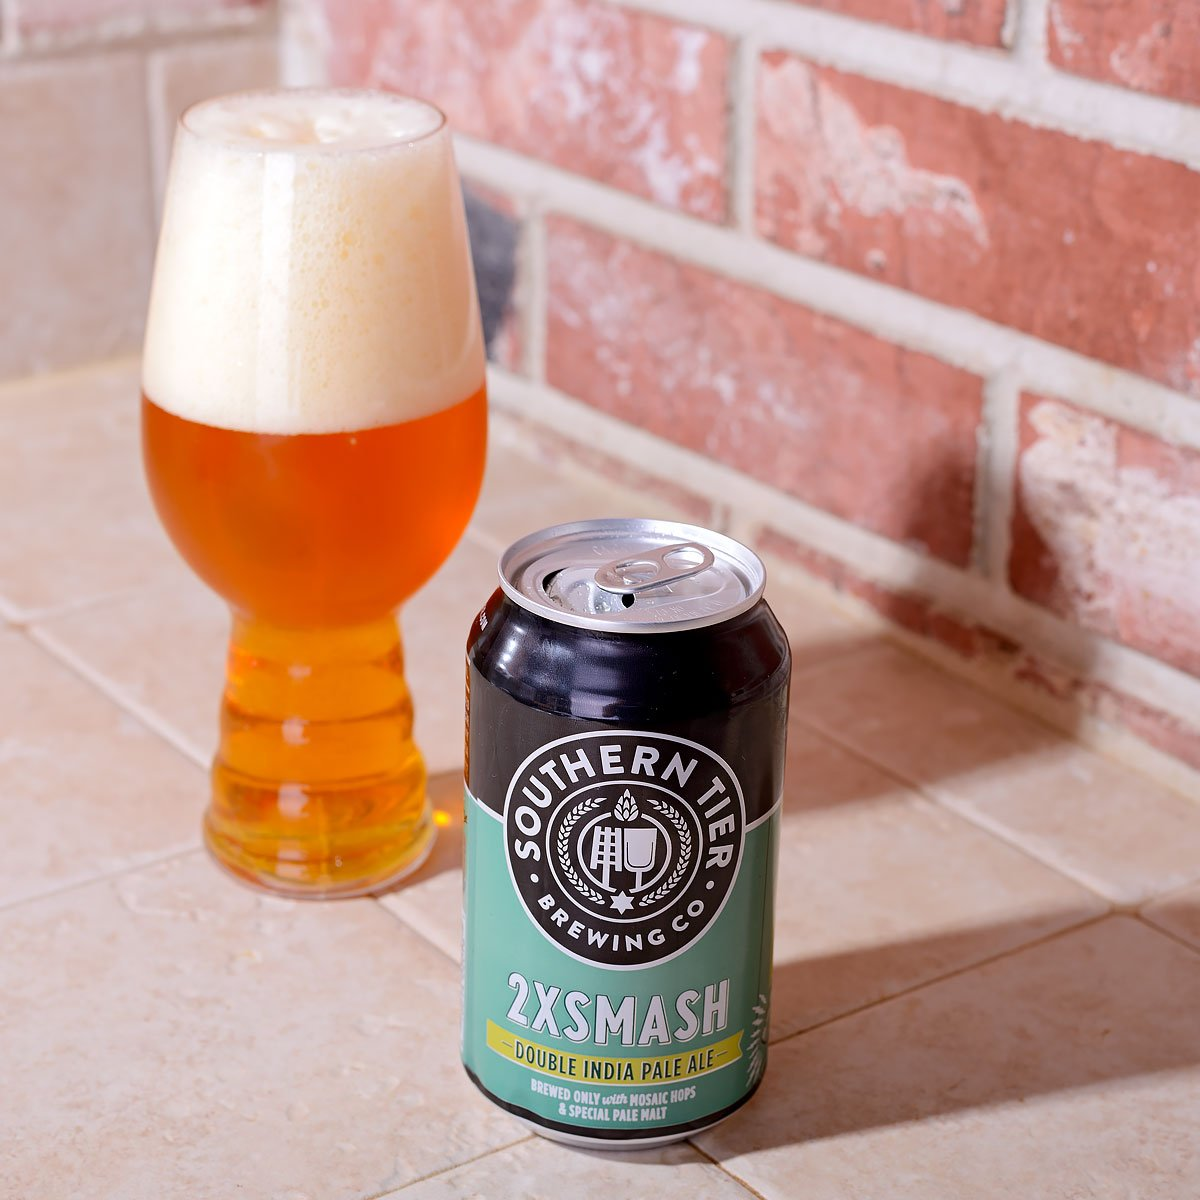 2XSMASH, an American Double IPA by Southern Tier Brewing Co.